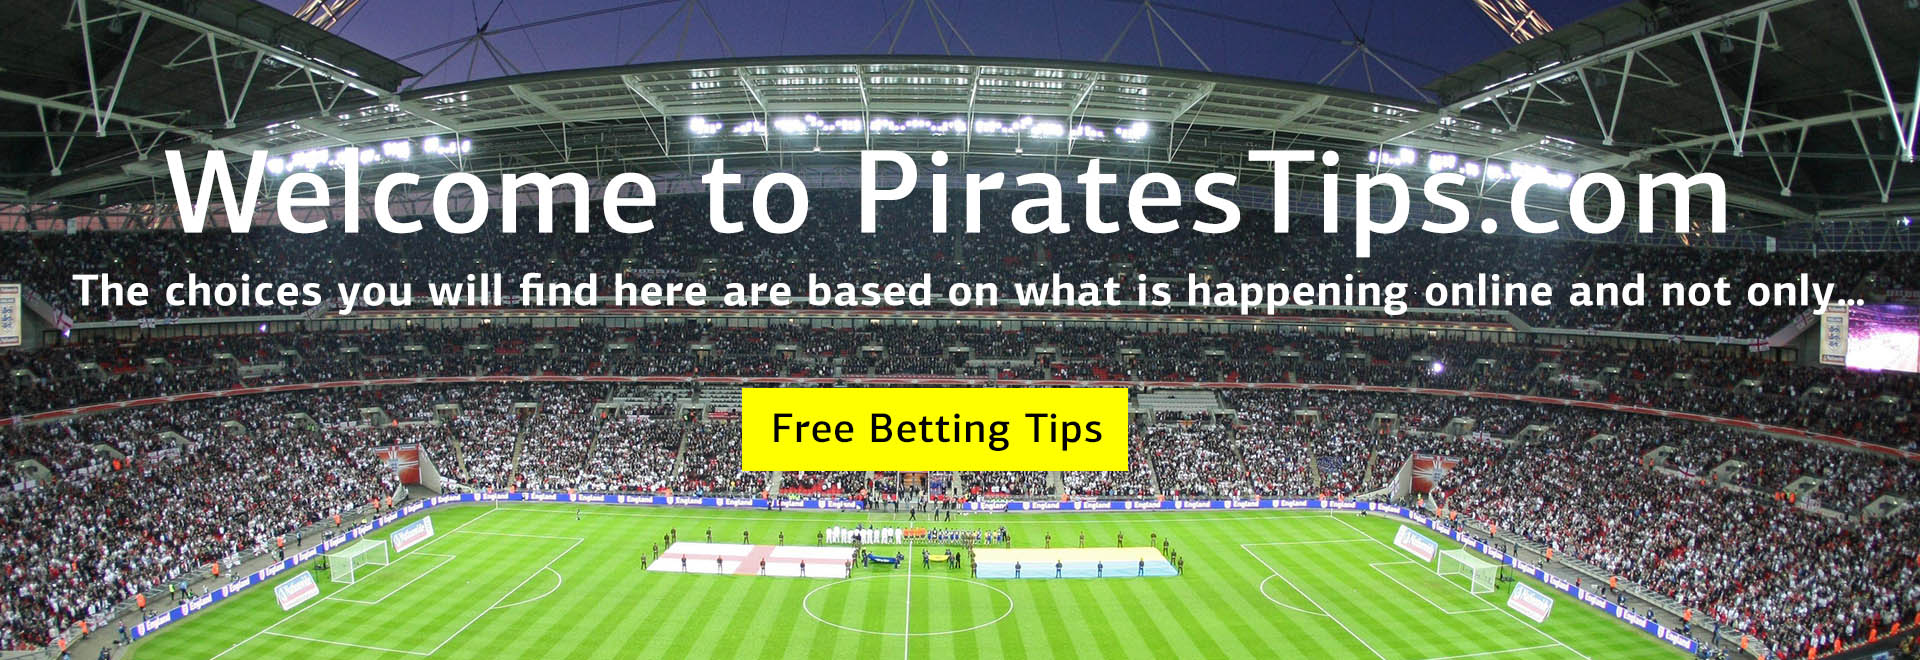 Piratestips The choices you will find here are based on what is happening online and not only..